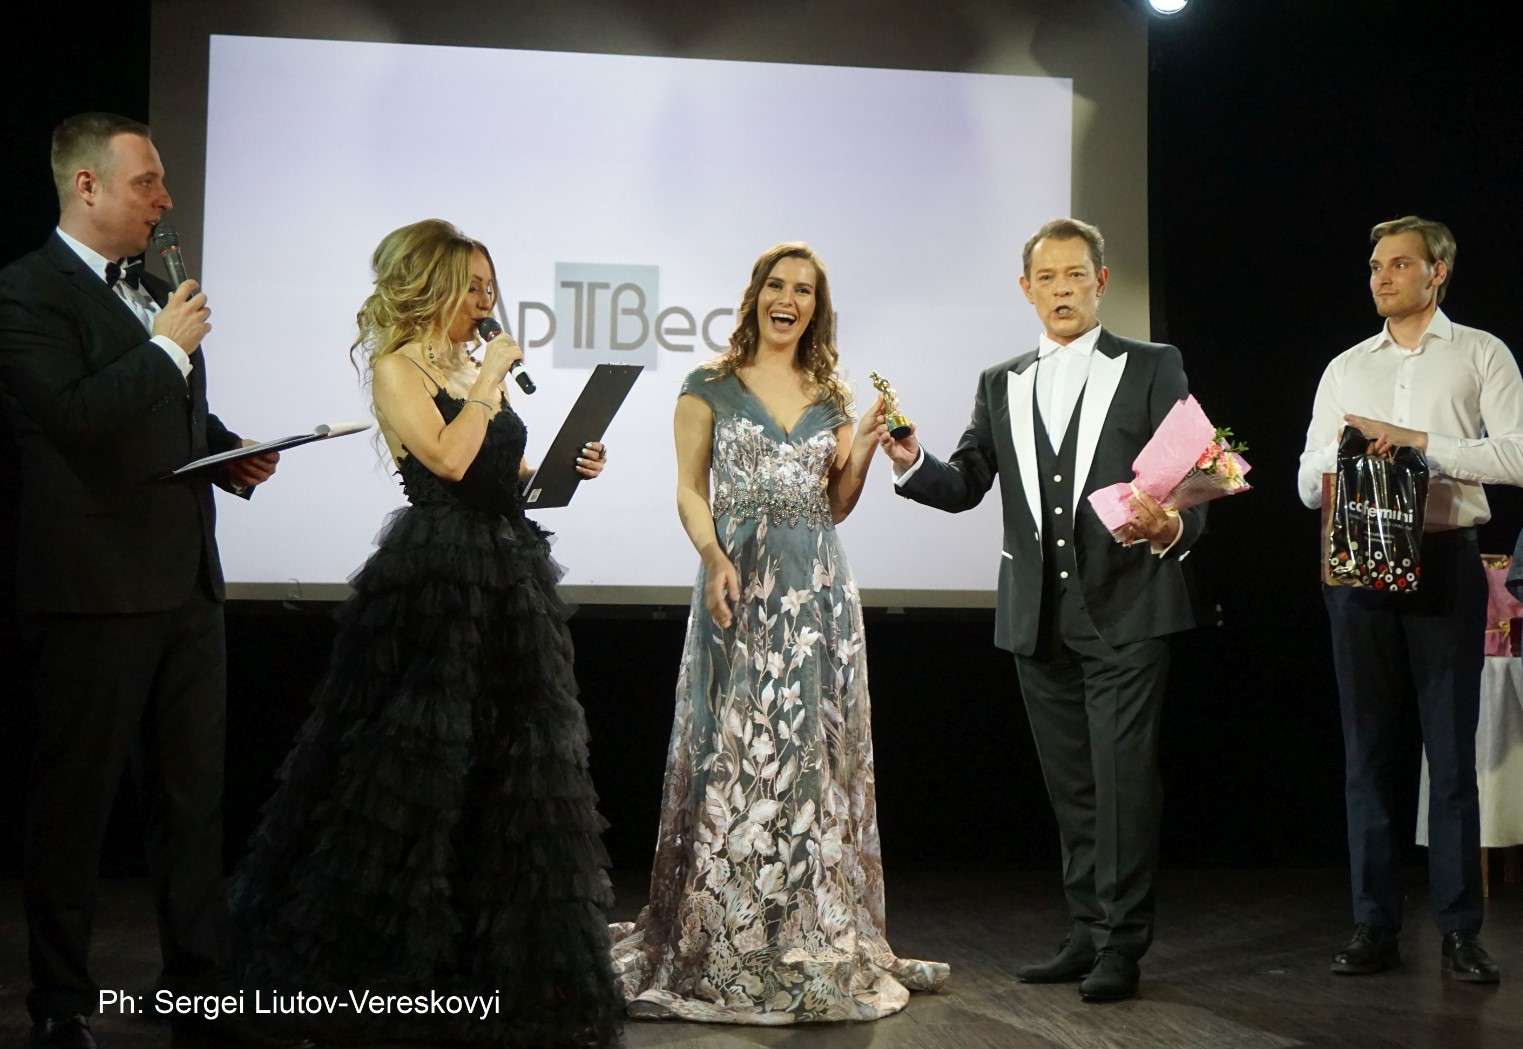 vadim-kazachenko-veronika-agafonova-art-business-awards-2019-womens-time